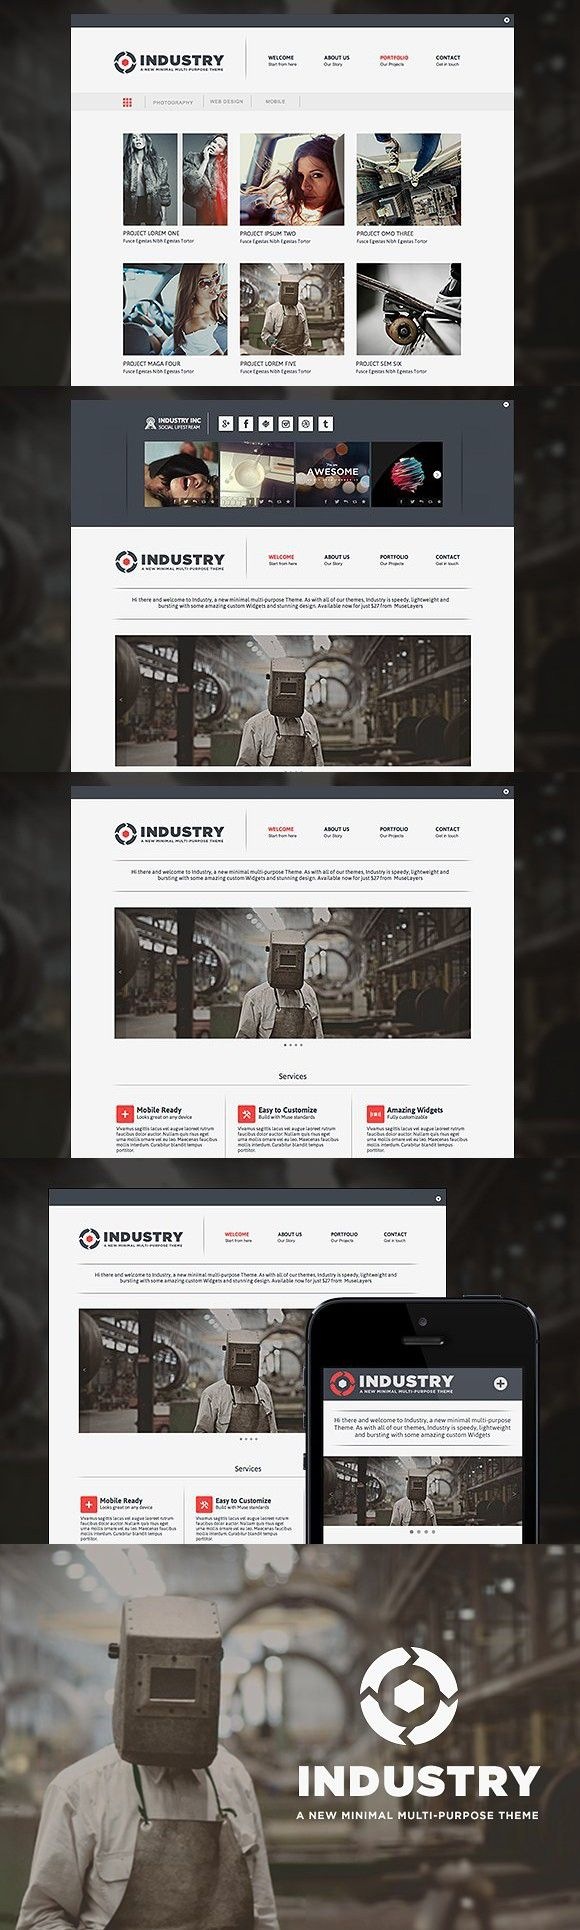 Industry Adobe Muse Theme Adobe muse, Web graphic